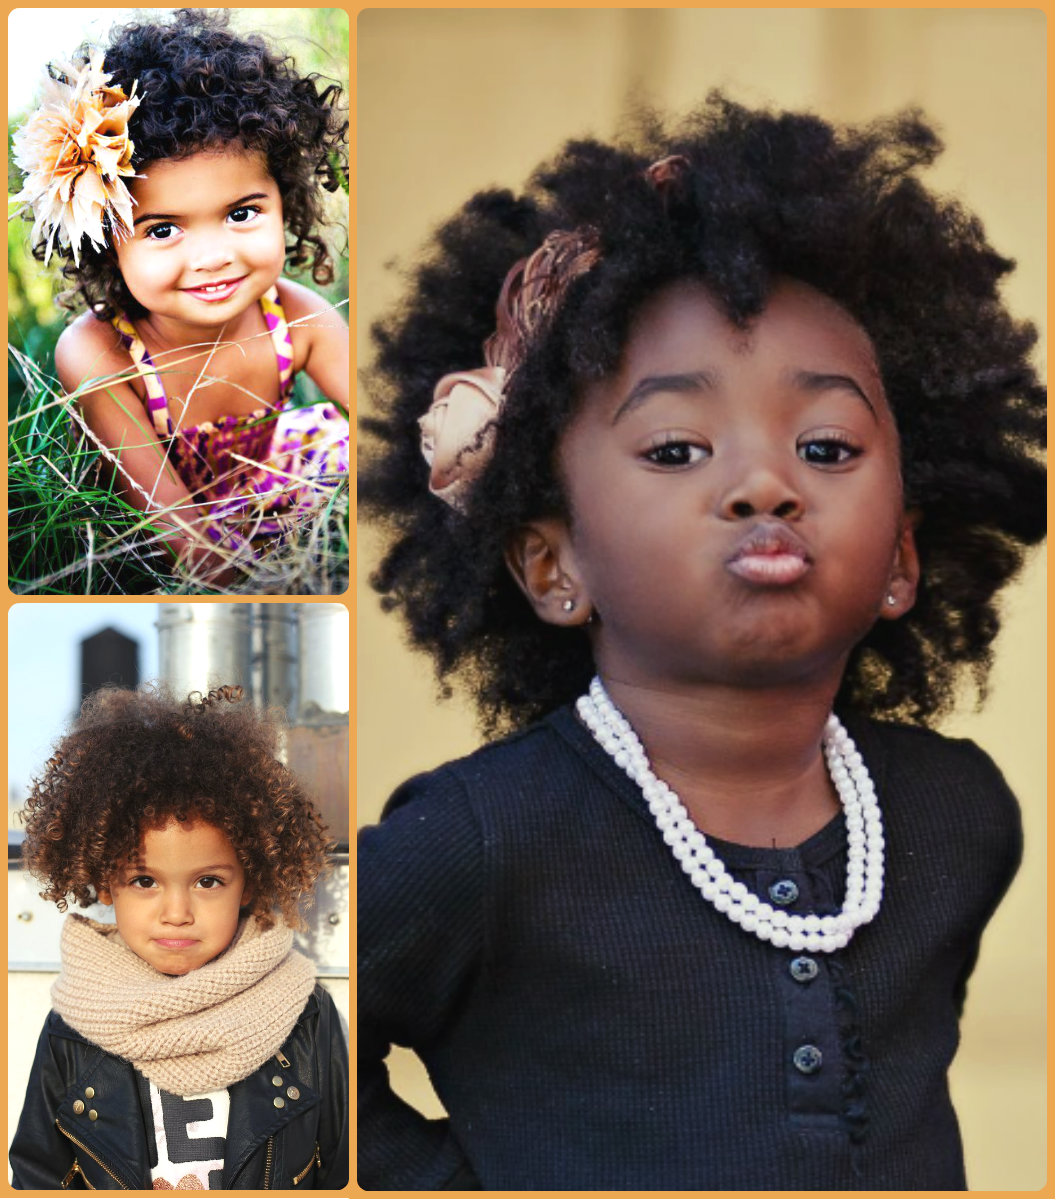 Pleasant Holiday Hairstyles For Little Black Girls Hairstyles 2016 Hair Short Hairstyles For Black Women Fulllsitofus